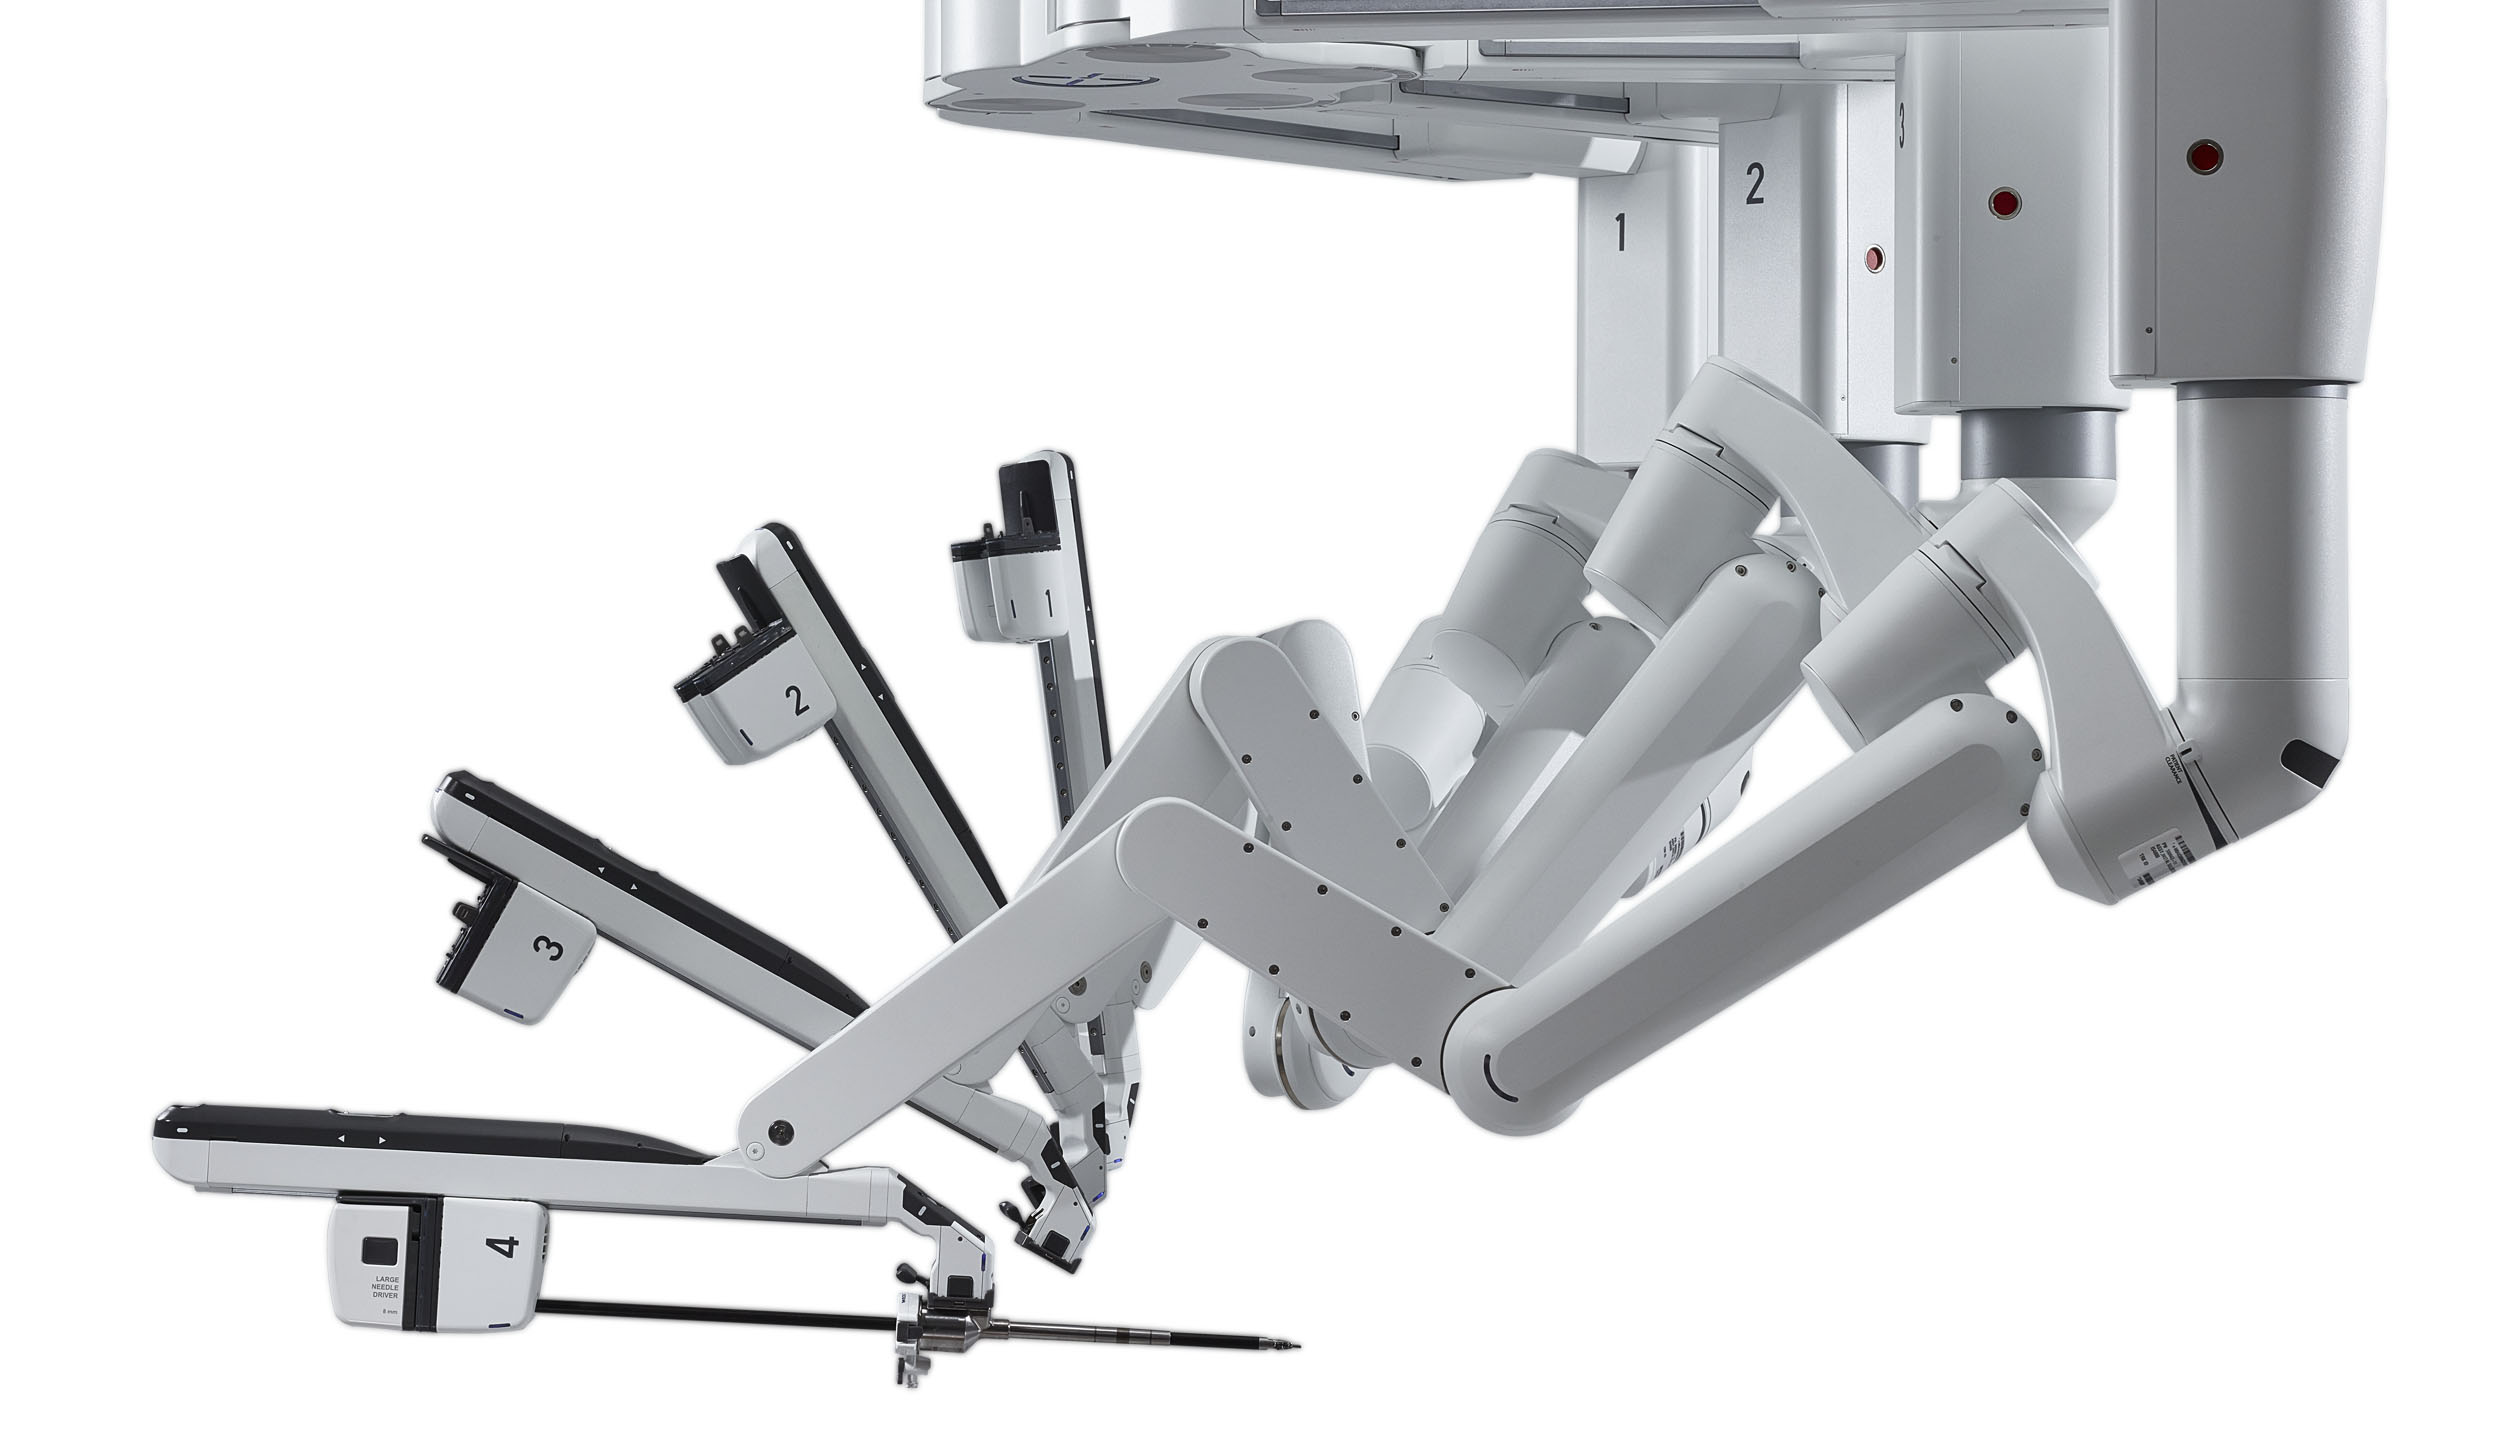 Detail of an arm on the da Vinci surgery system